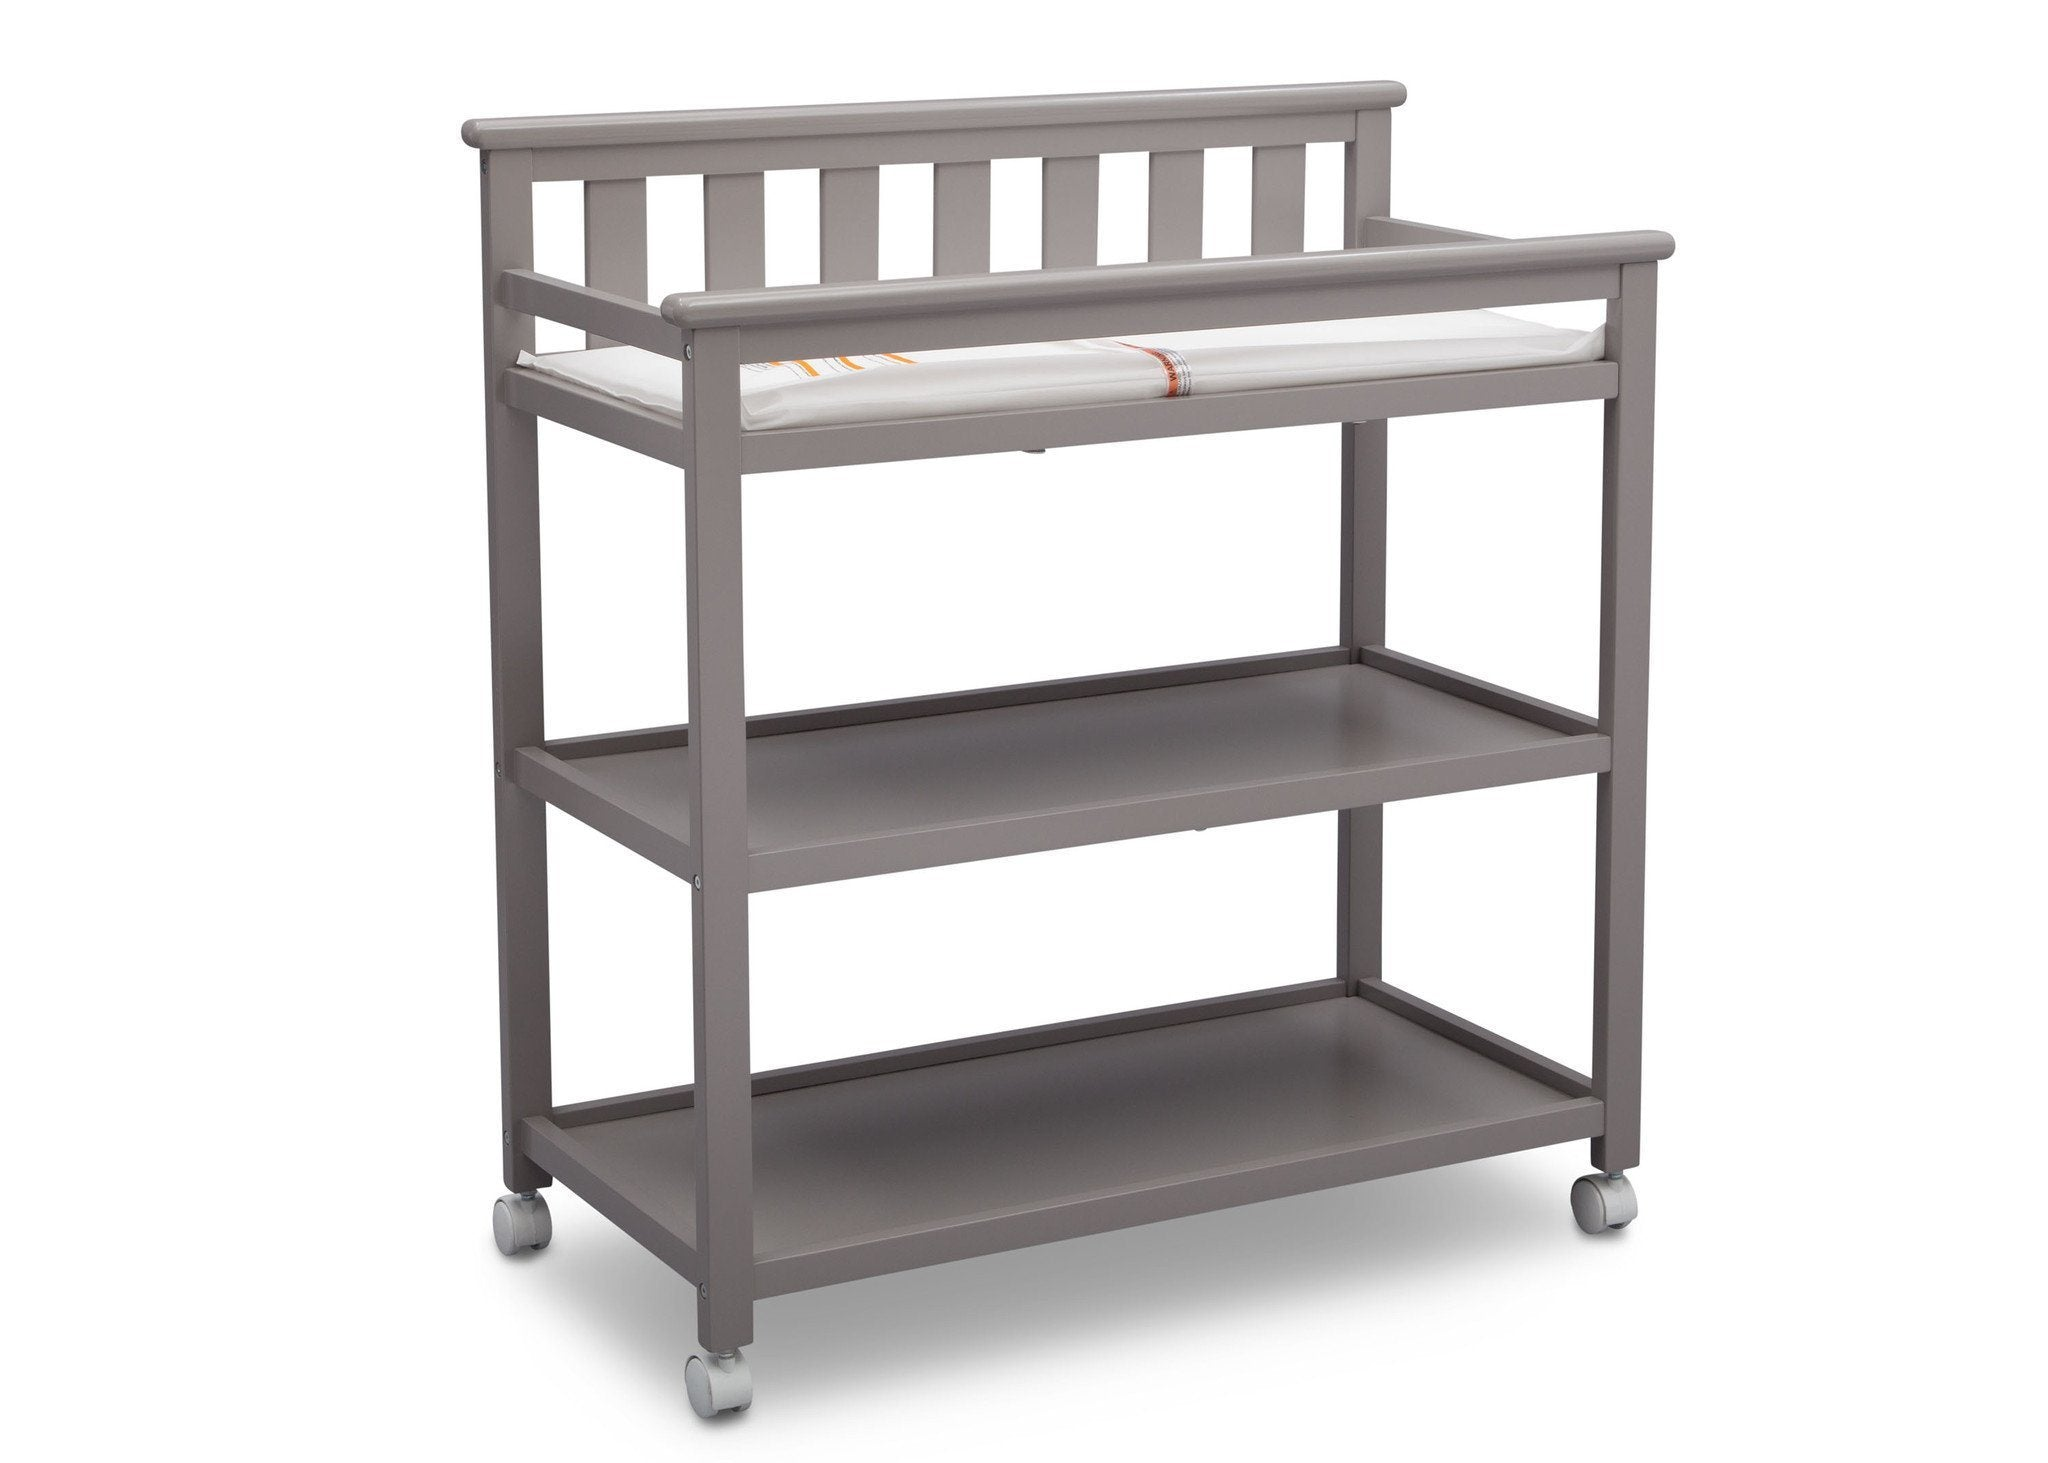 Delta Children Grey (026) Liberty Changing Table Side View a3a